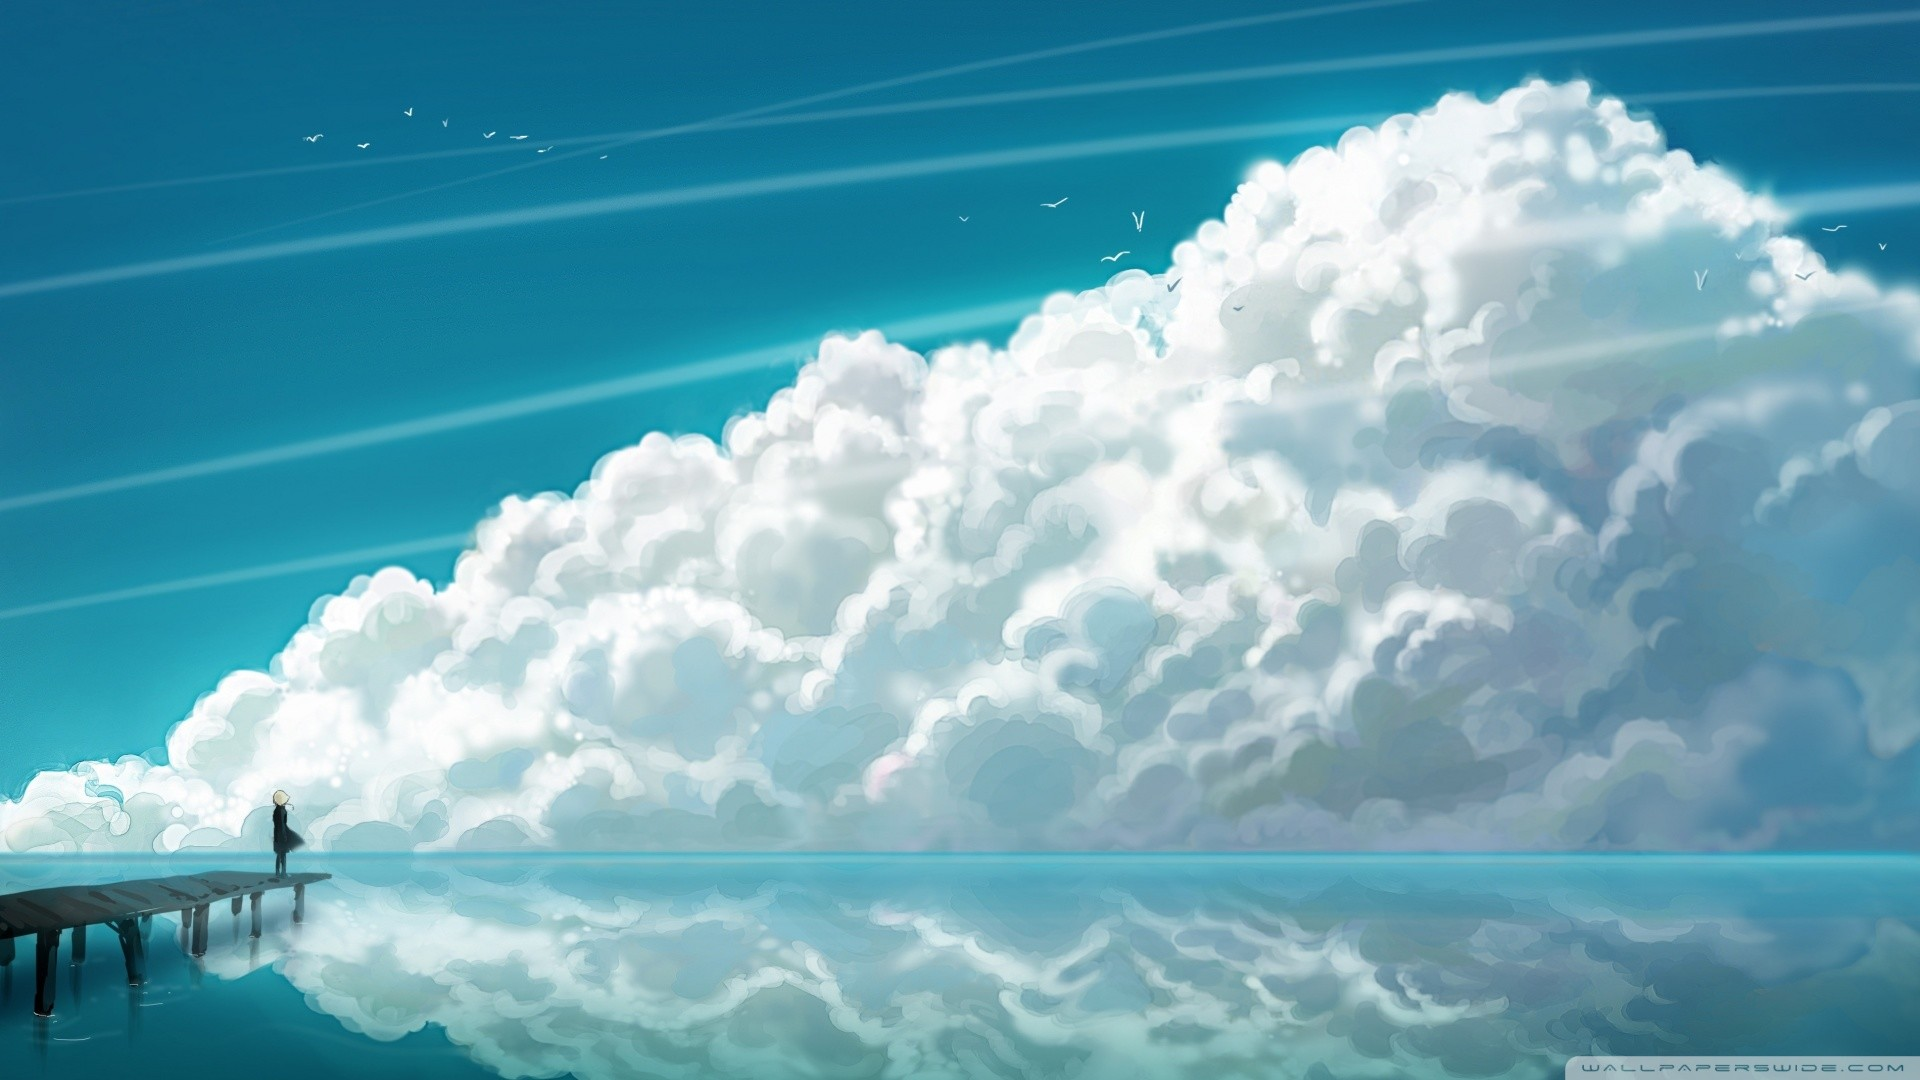 1920x1080 Sky Clouds HD desktop wallpaper : High Definition : Fullscreen ... src